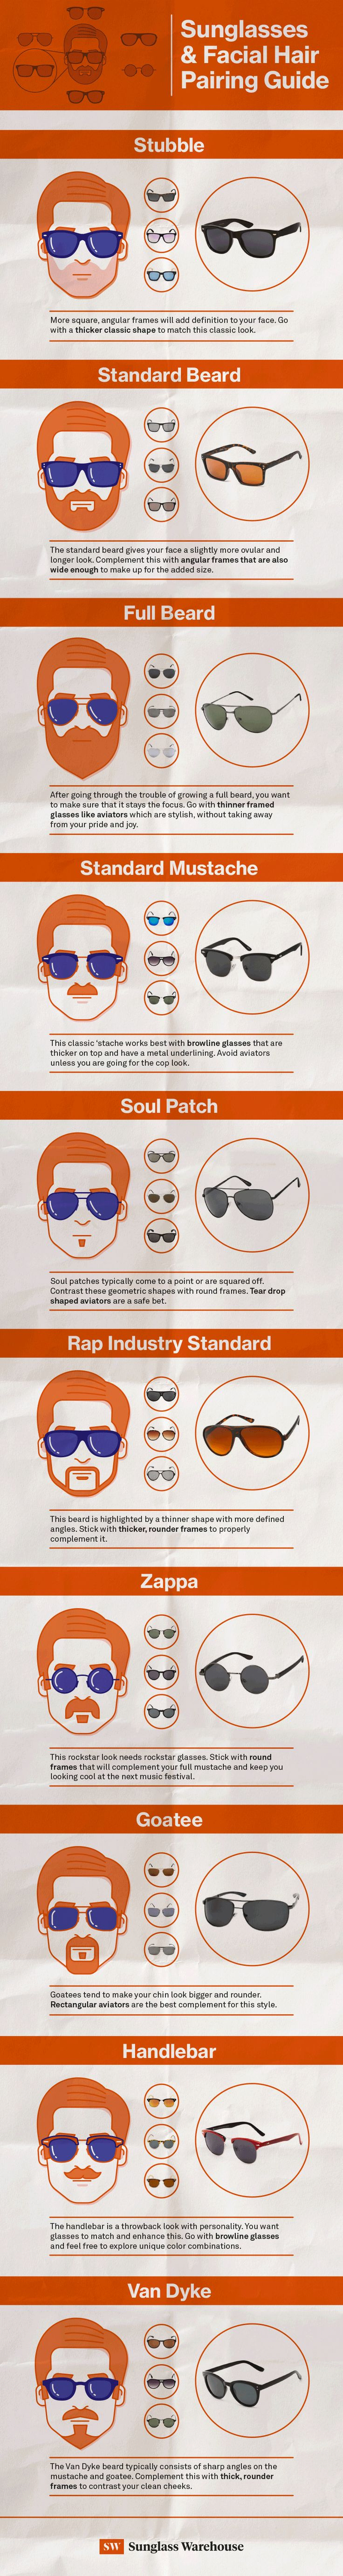 How to choose sunglasses to match a beard and mustache